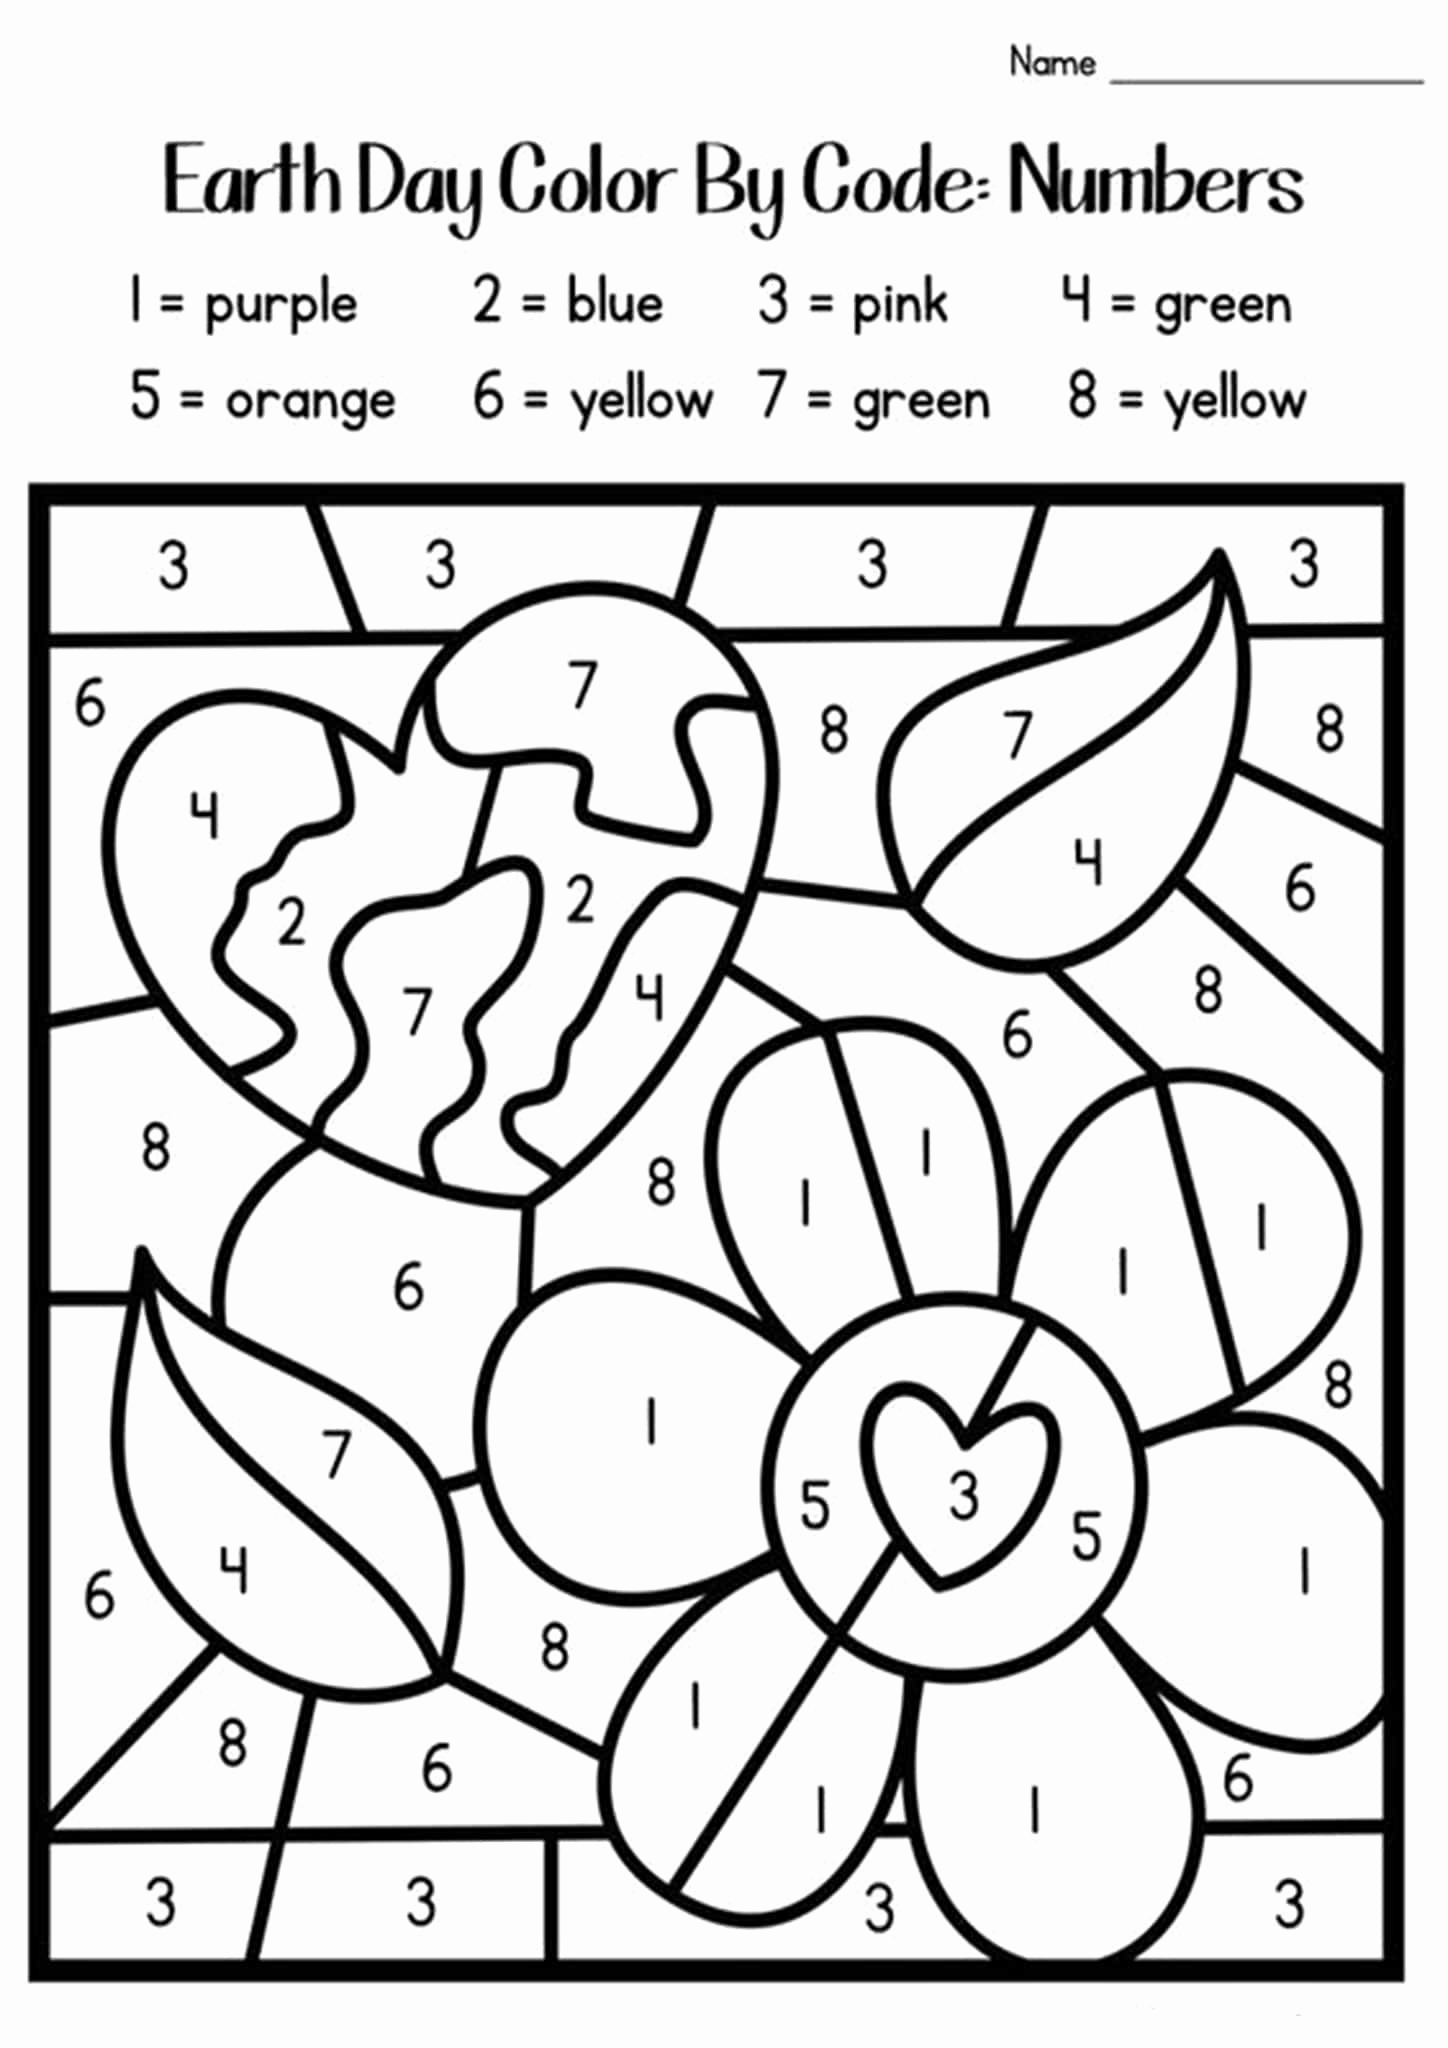 Easy Color by Number Worksheets New Free Printable Color by Number Worksheets for Kindergarten